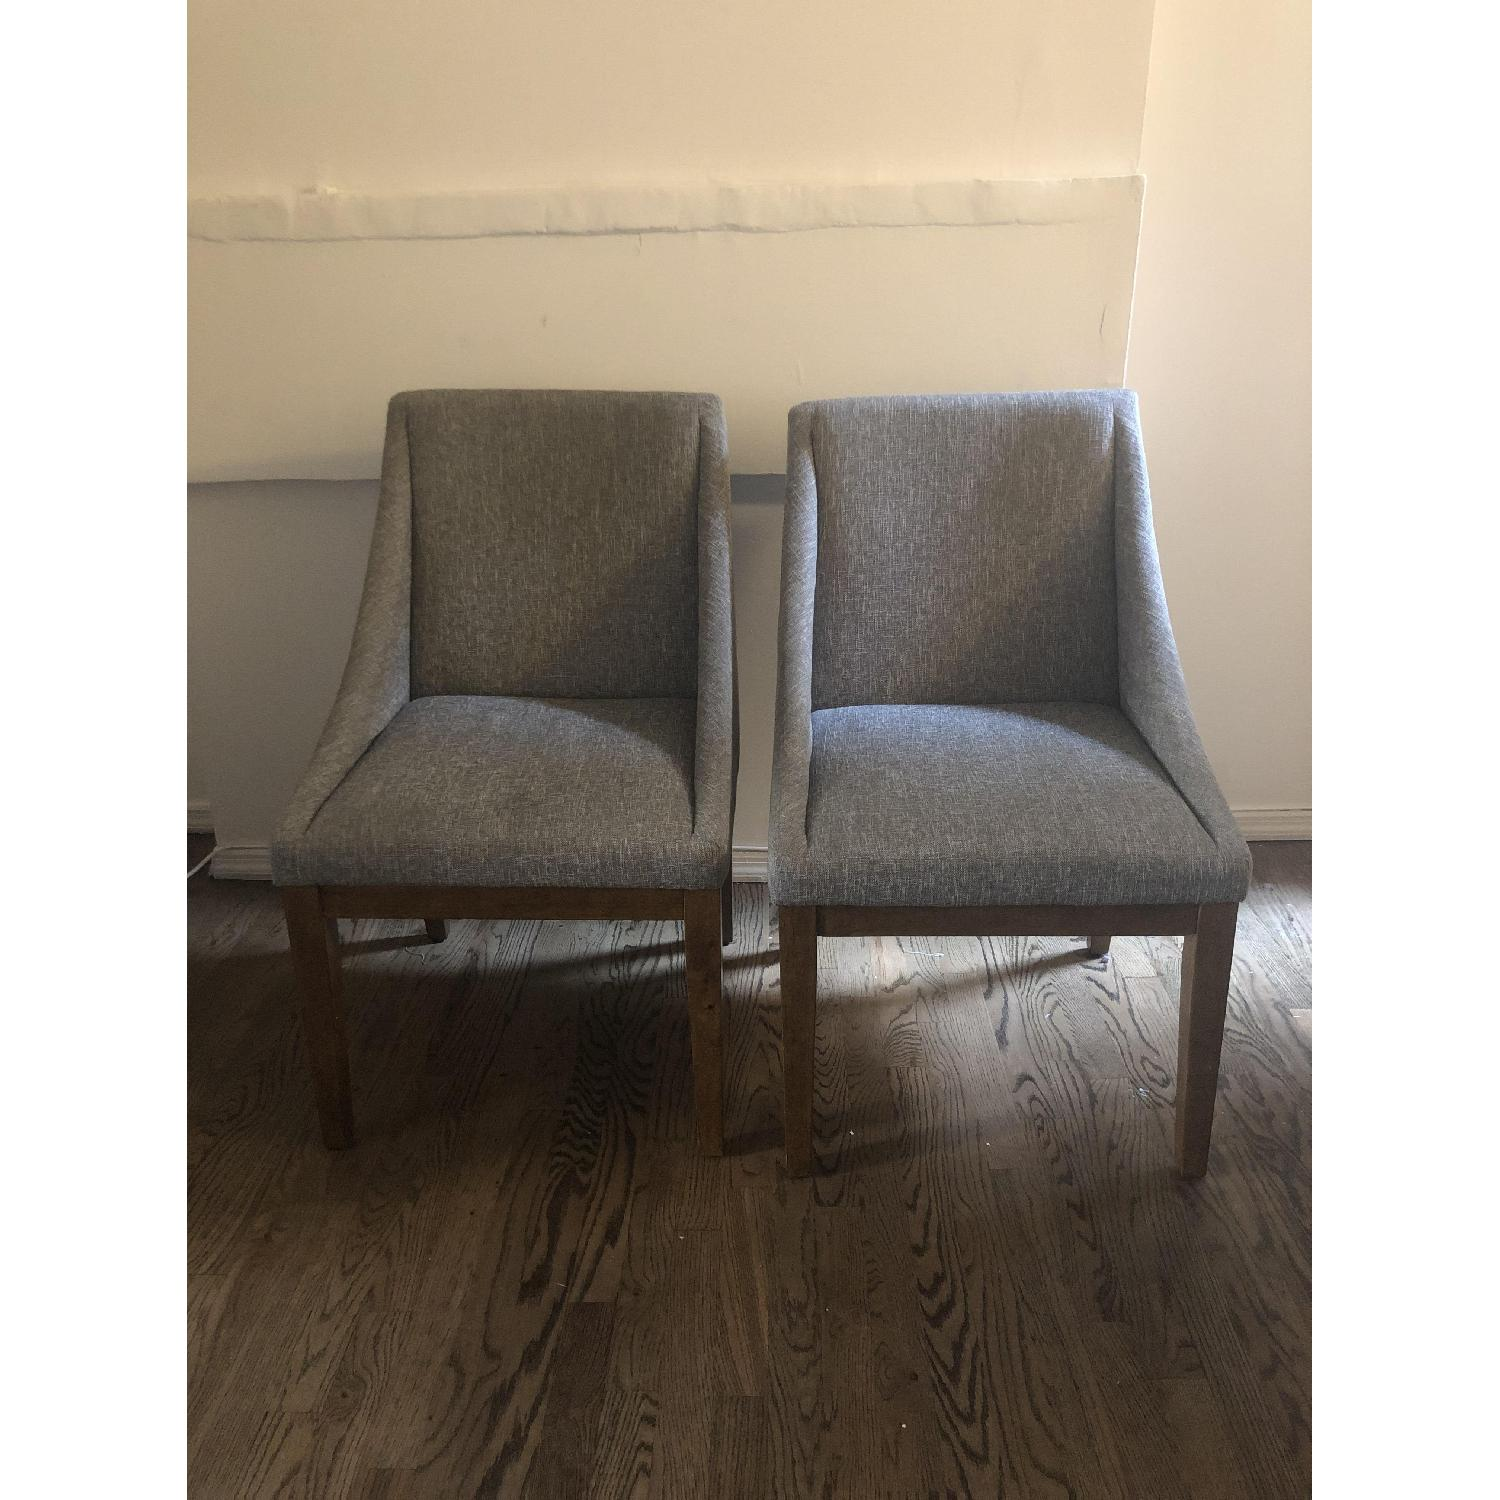 West Elm Curved Upholstered Chairs - image-3